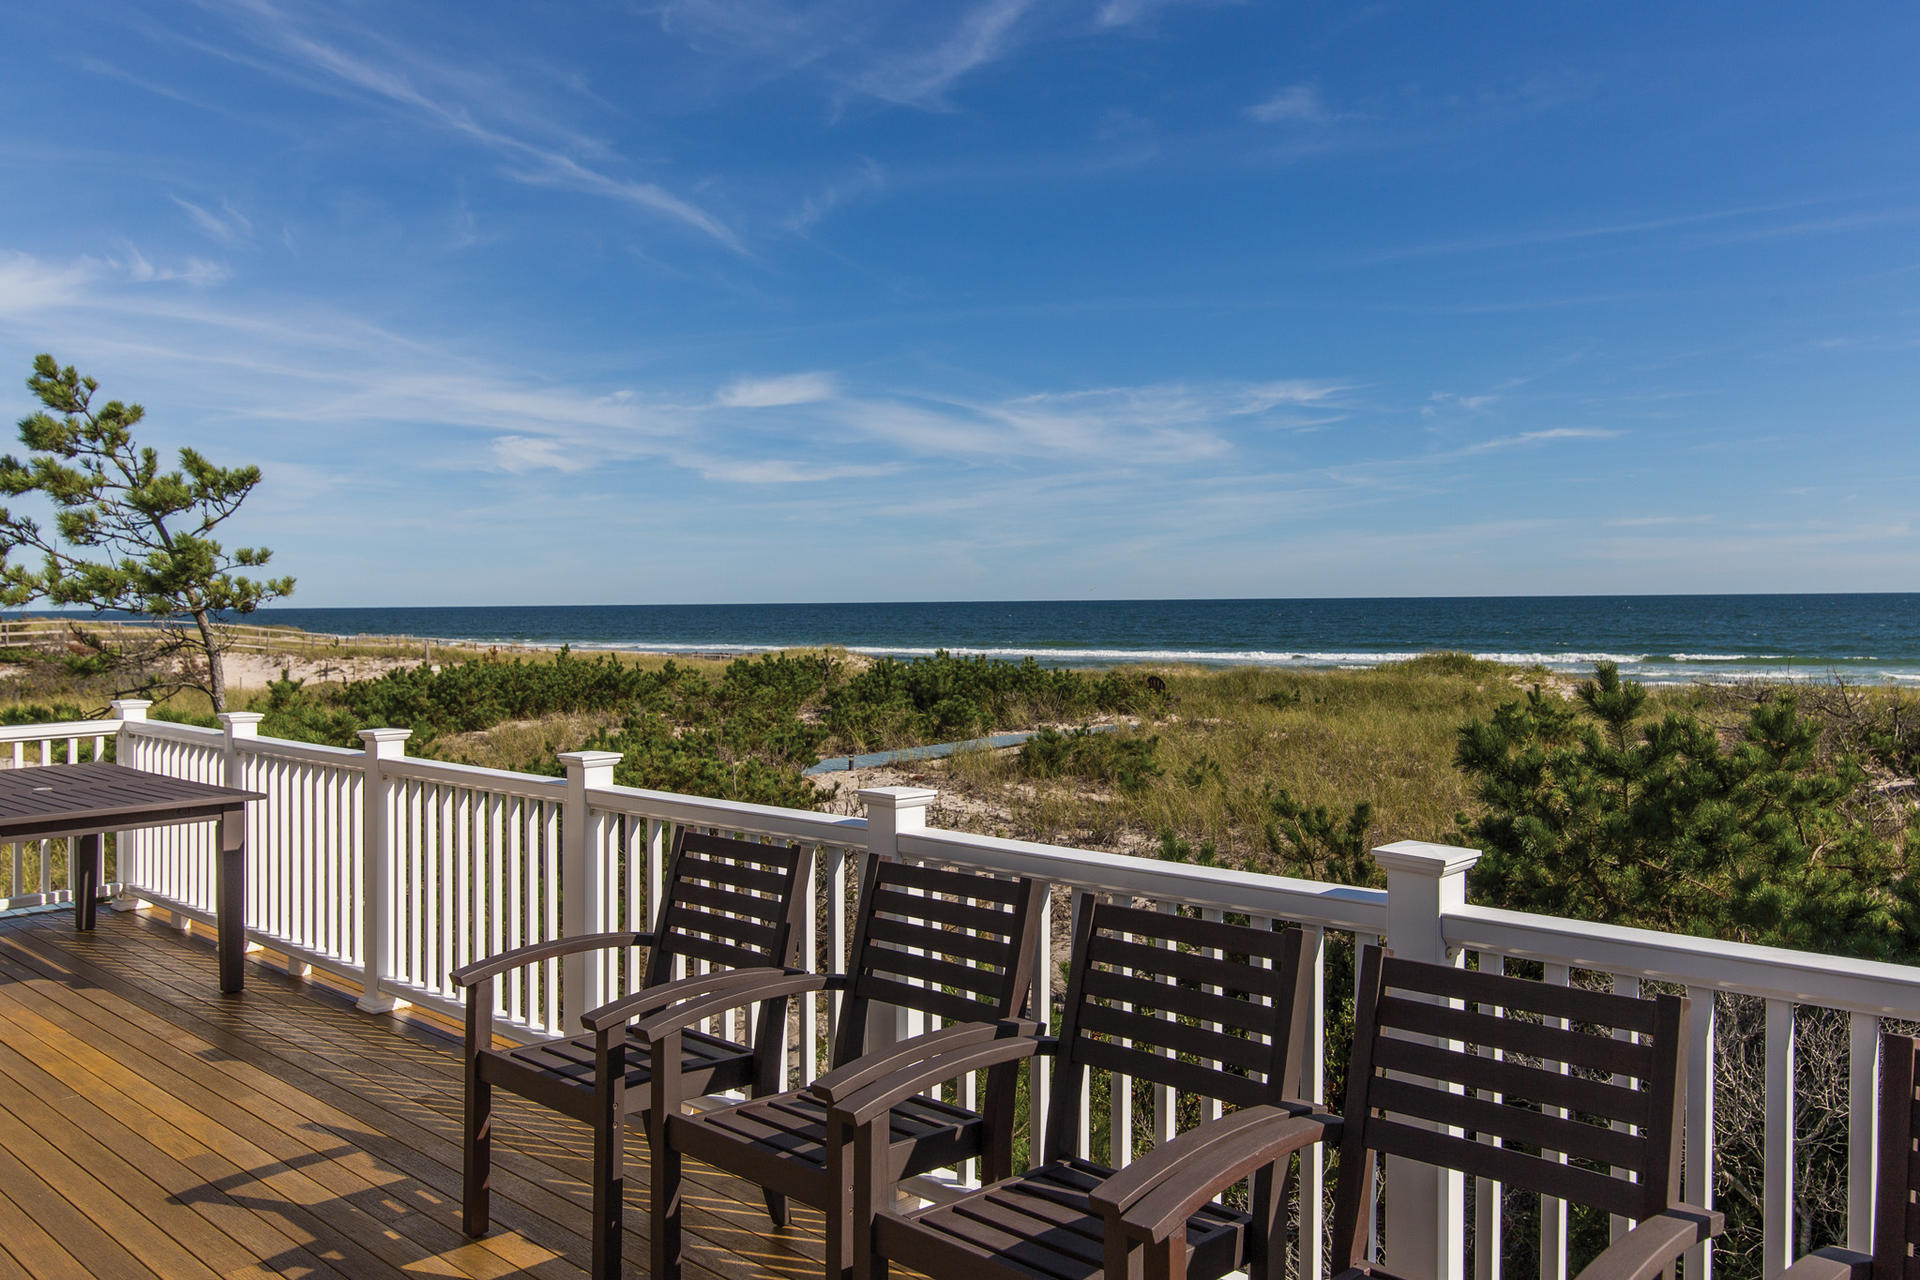 Casa Unifamiliar por un Alquiler en Gorgeous Oceanfront With Row To Bay Westhampton, Nueva York